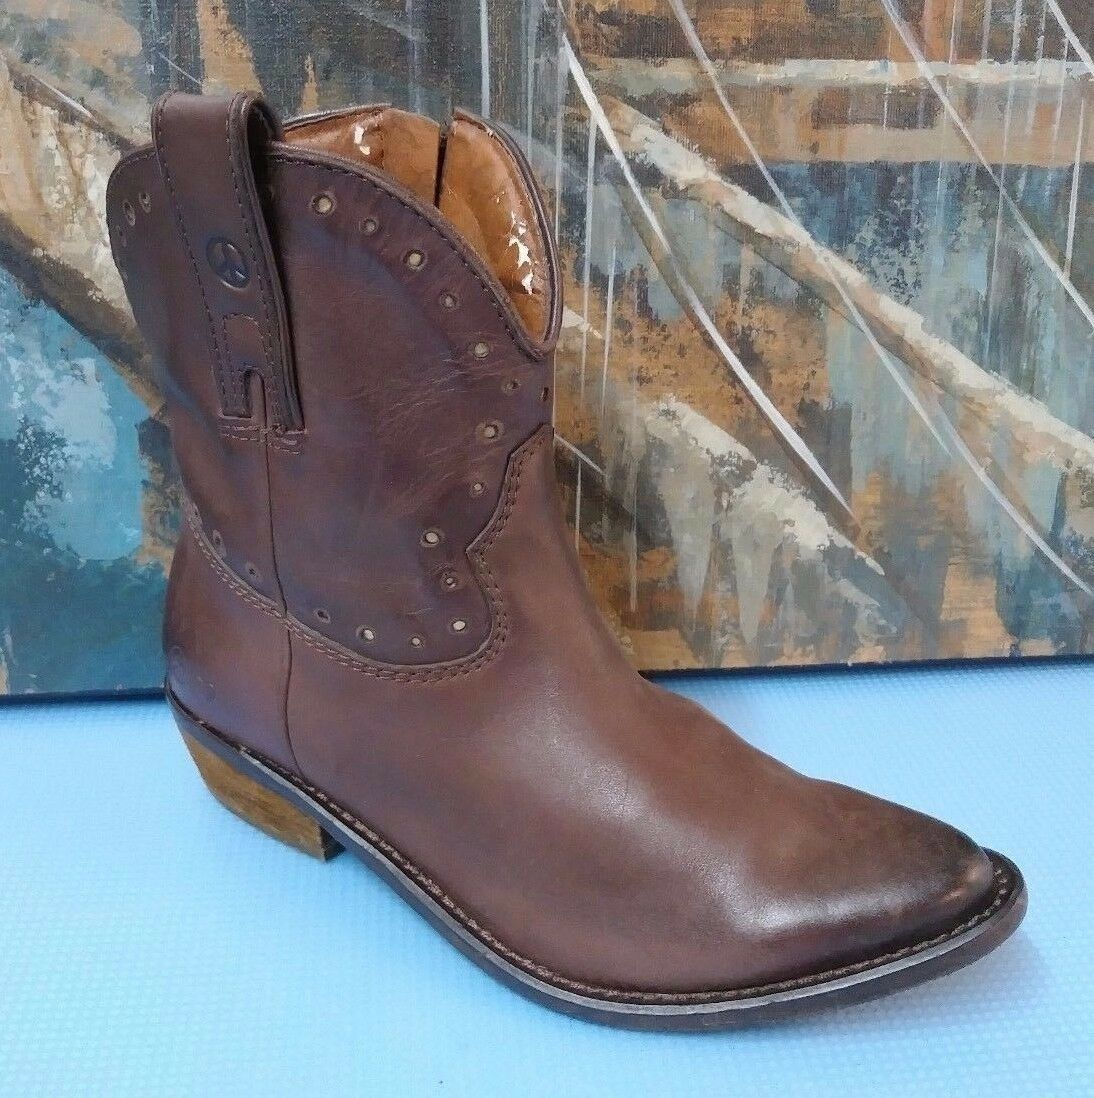 Wouomo LUCKY BRAND Cowboy Western Ankle stivali Dimensione 6 M